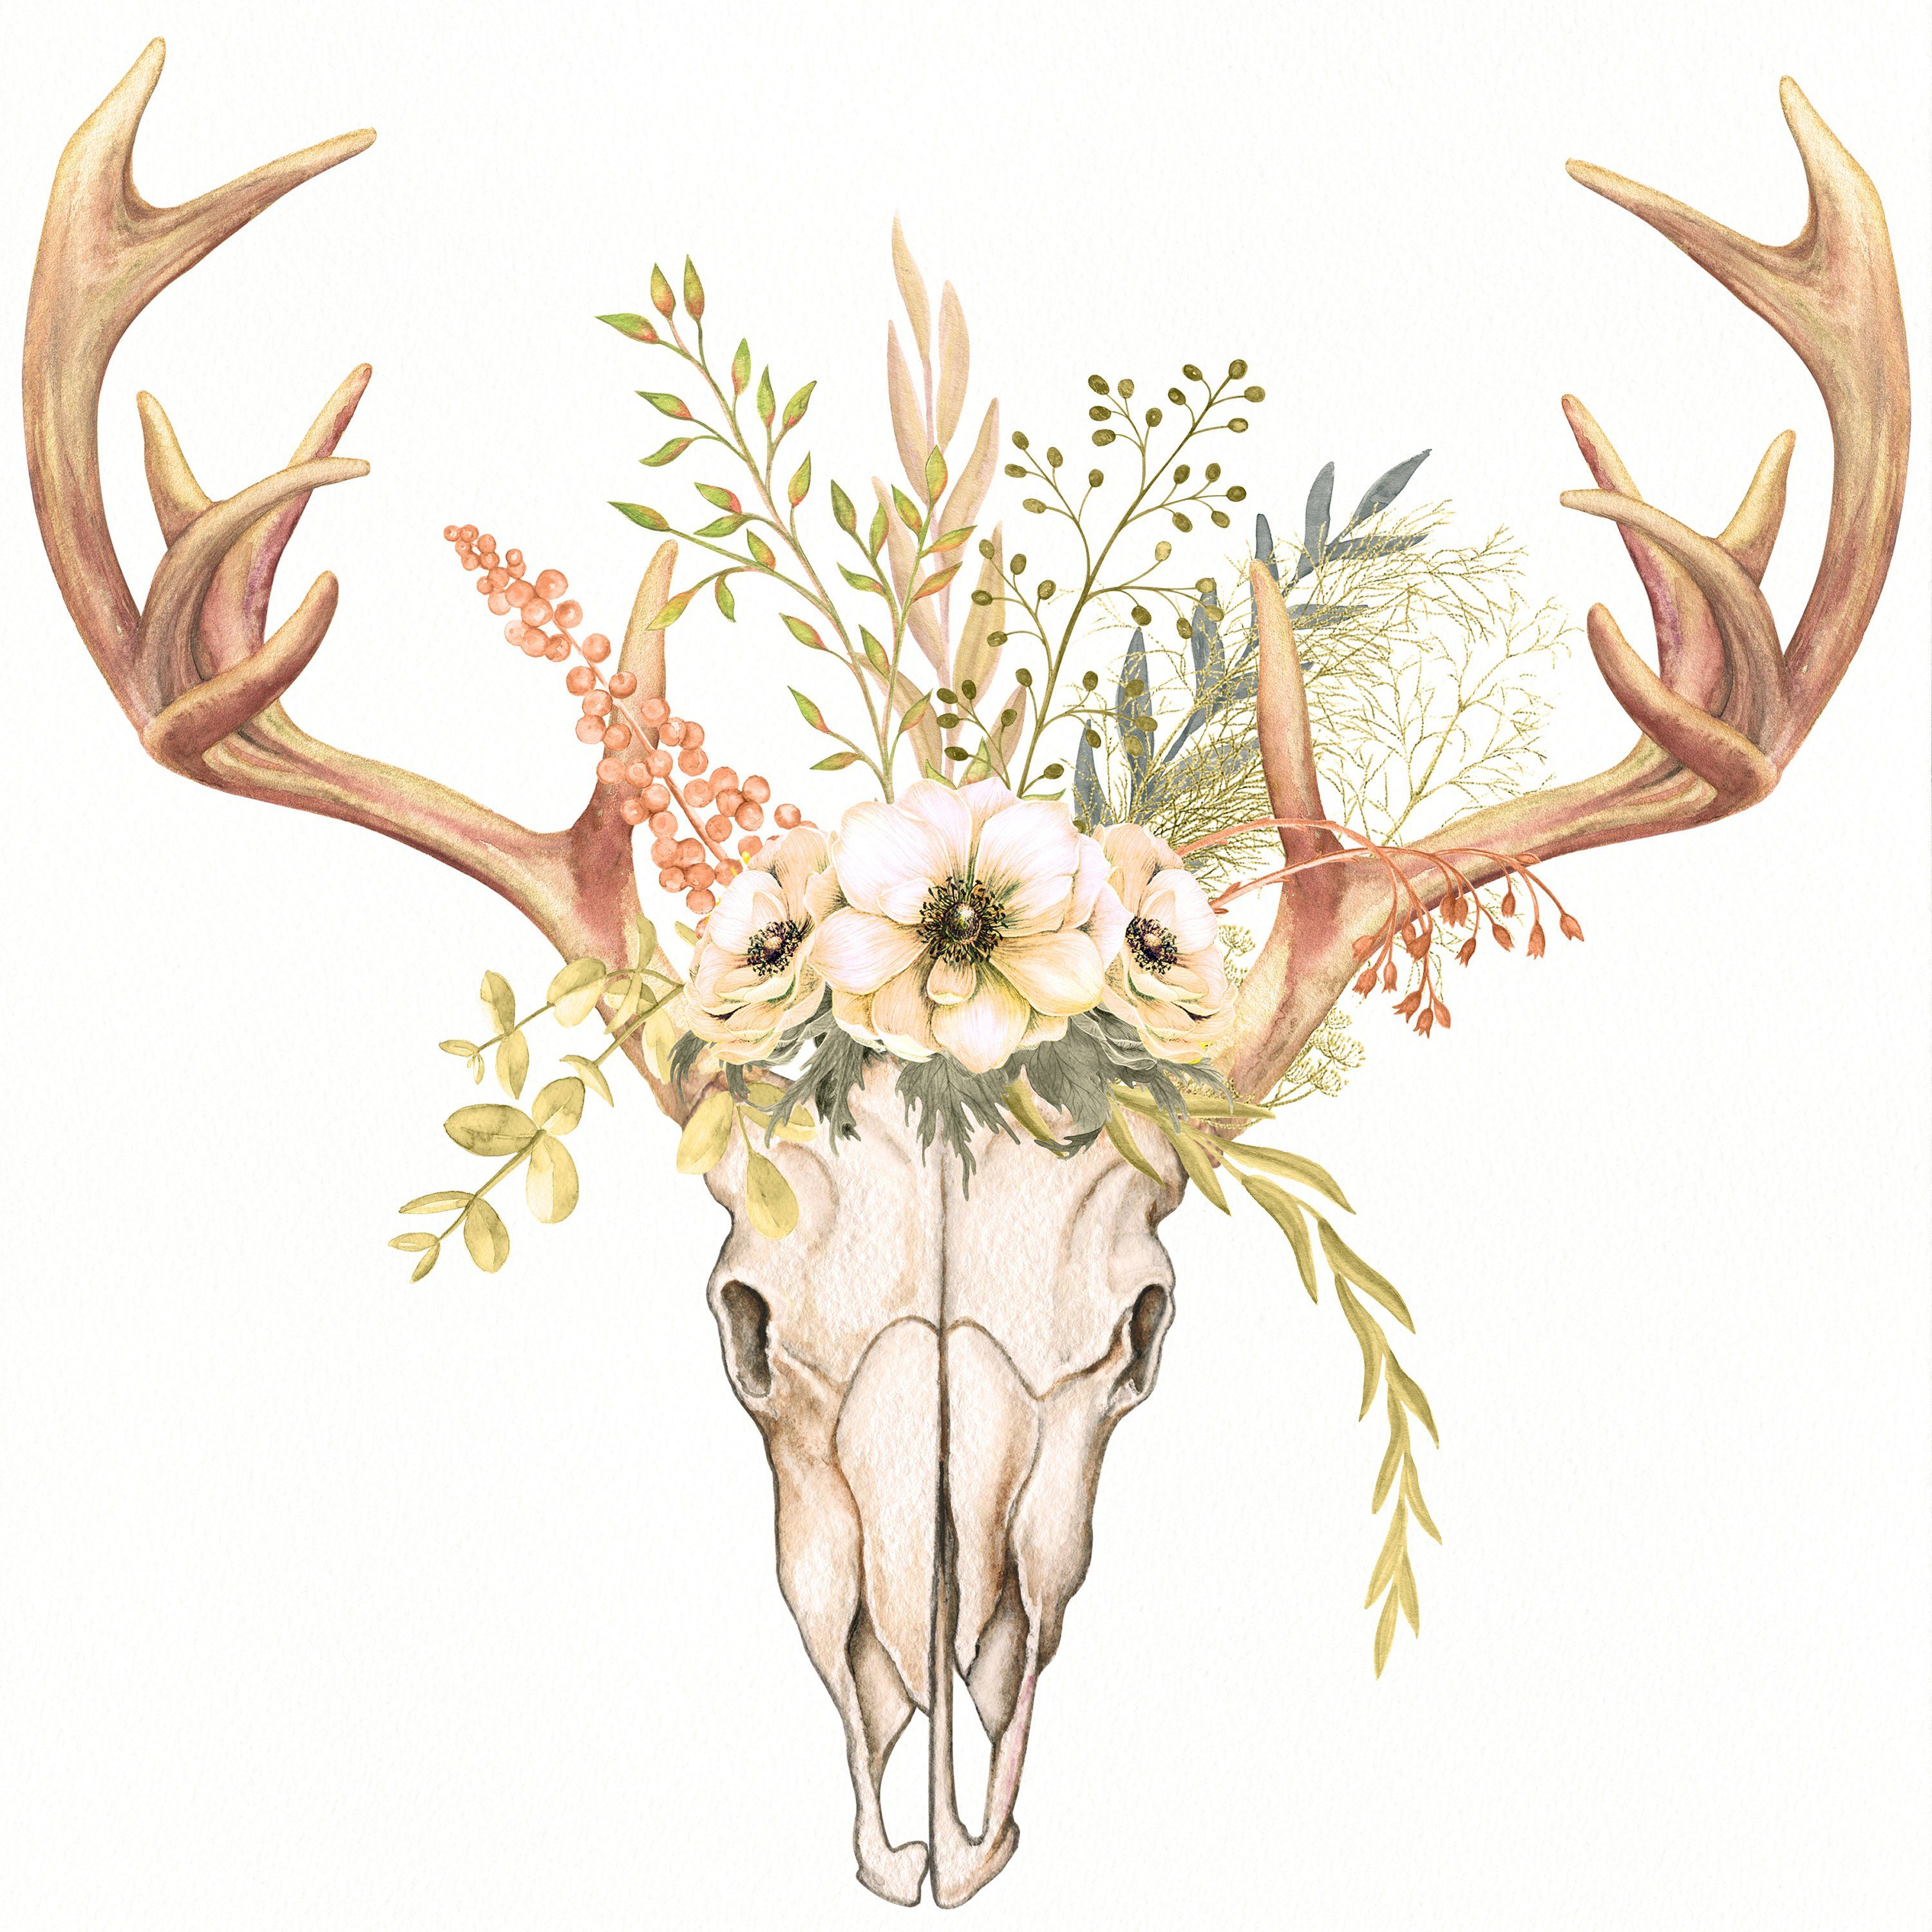 Antlers Field Flowers Clipart Bouquet Floral Watercolor Clipart Deer Skull Rustic Woodland Wedding Clip Art Deer Skull Tattoos Deer Skull Art Antler Tattoos